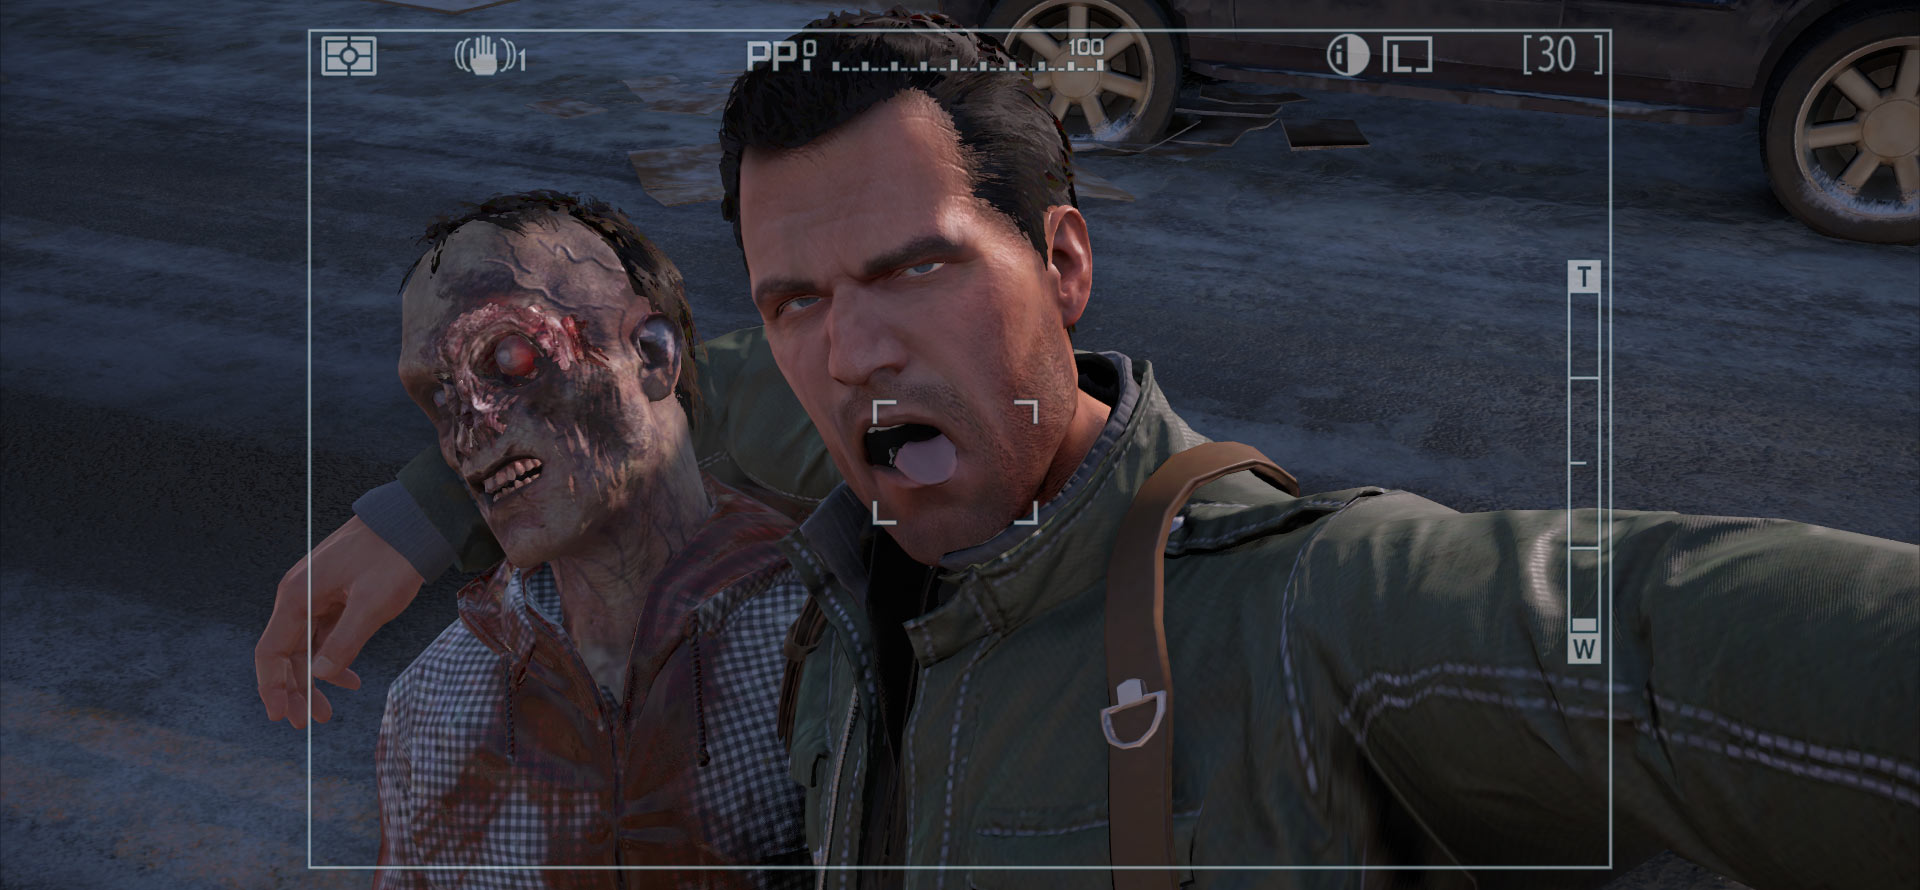 Dead Rising 4 Getting a Global Steam Release March 14th